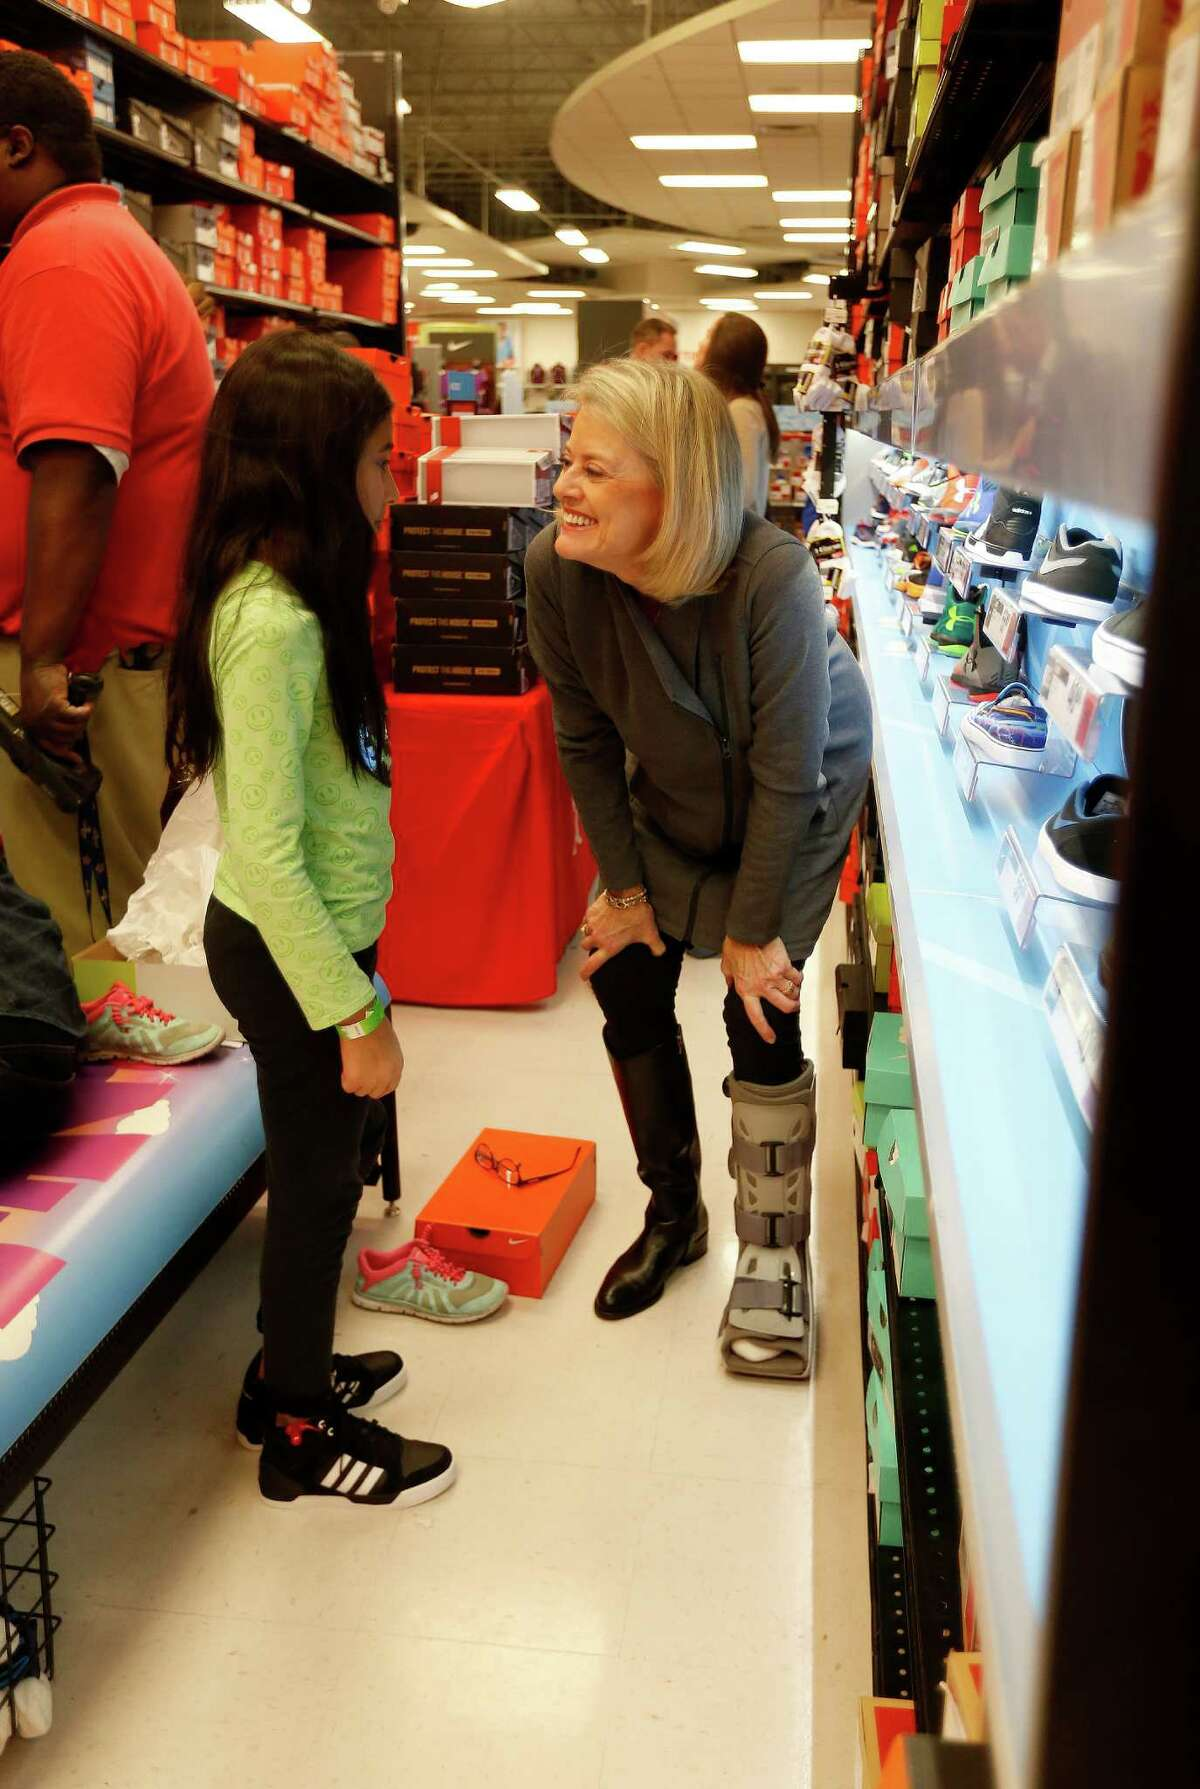 Sara Wilson helps Aalyah shop for shoes as she and about 70 children aged 4-17 from the Star of Hope's Randy and Kathy Tabor Transitional Living Center shop for new shoes at Houston's Sports Authority store on Post Oak, assisted by Trees of Hope Guild on Monday, Jan. 4, 2016, in Houston.